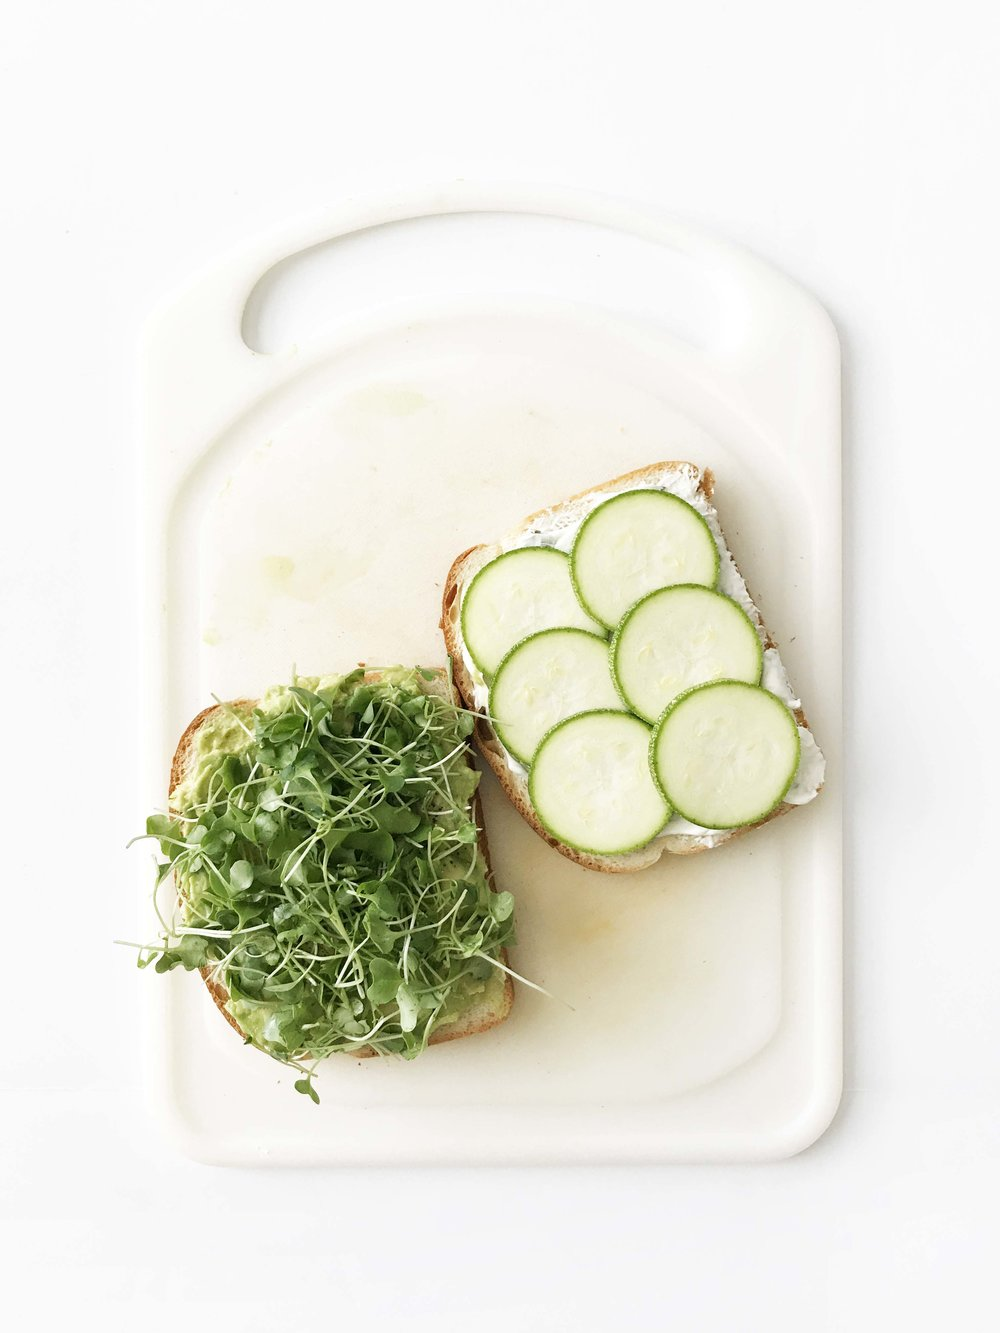 lean-mean-green-sandwich6.jpg